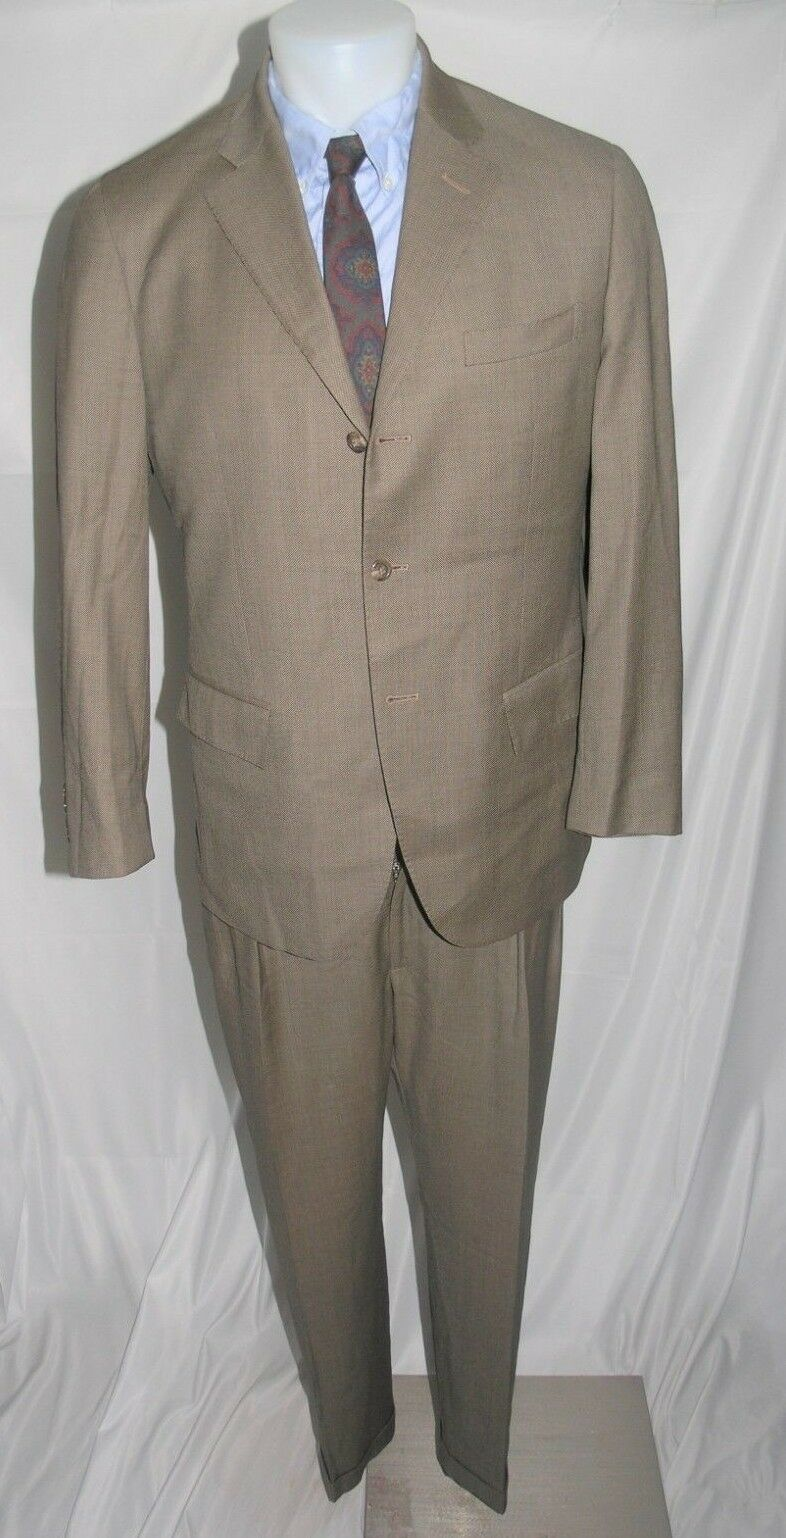 Polo Ralph Lauren x Corneliani Three Roll Two Suit 40 R 35 x 29